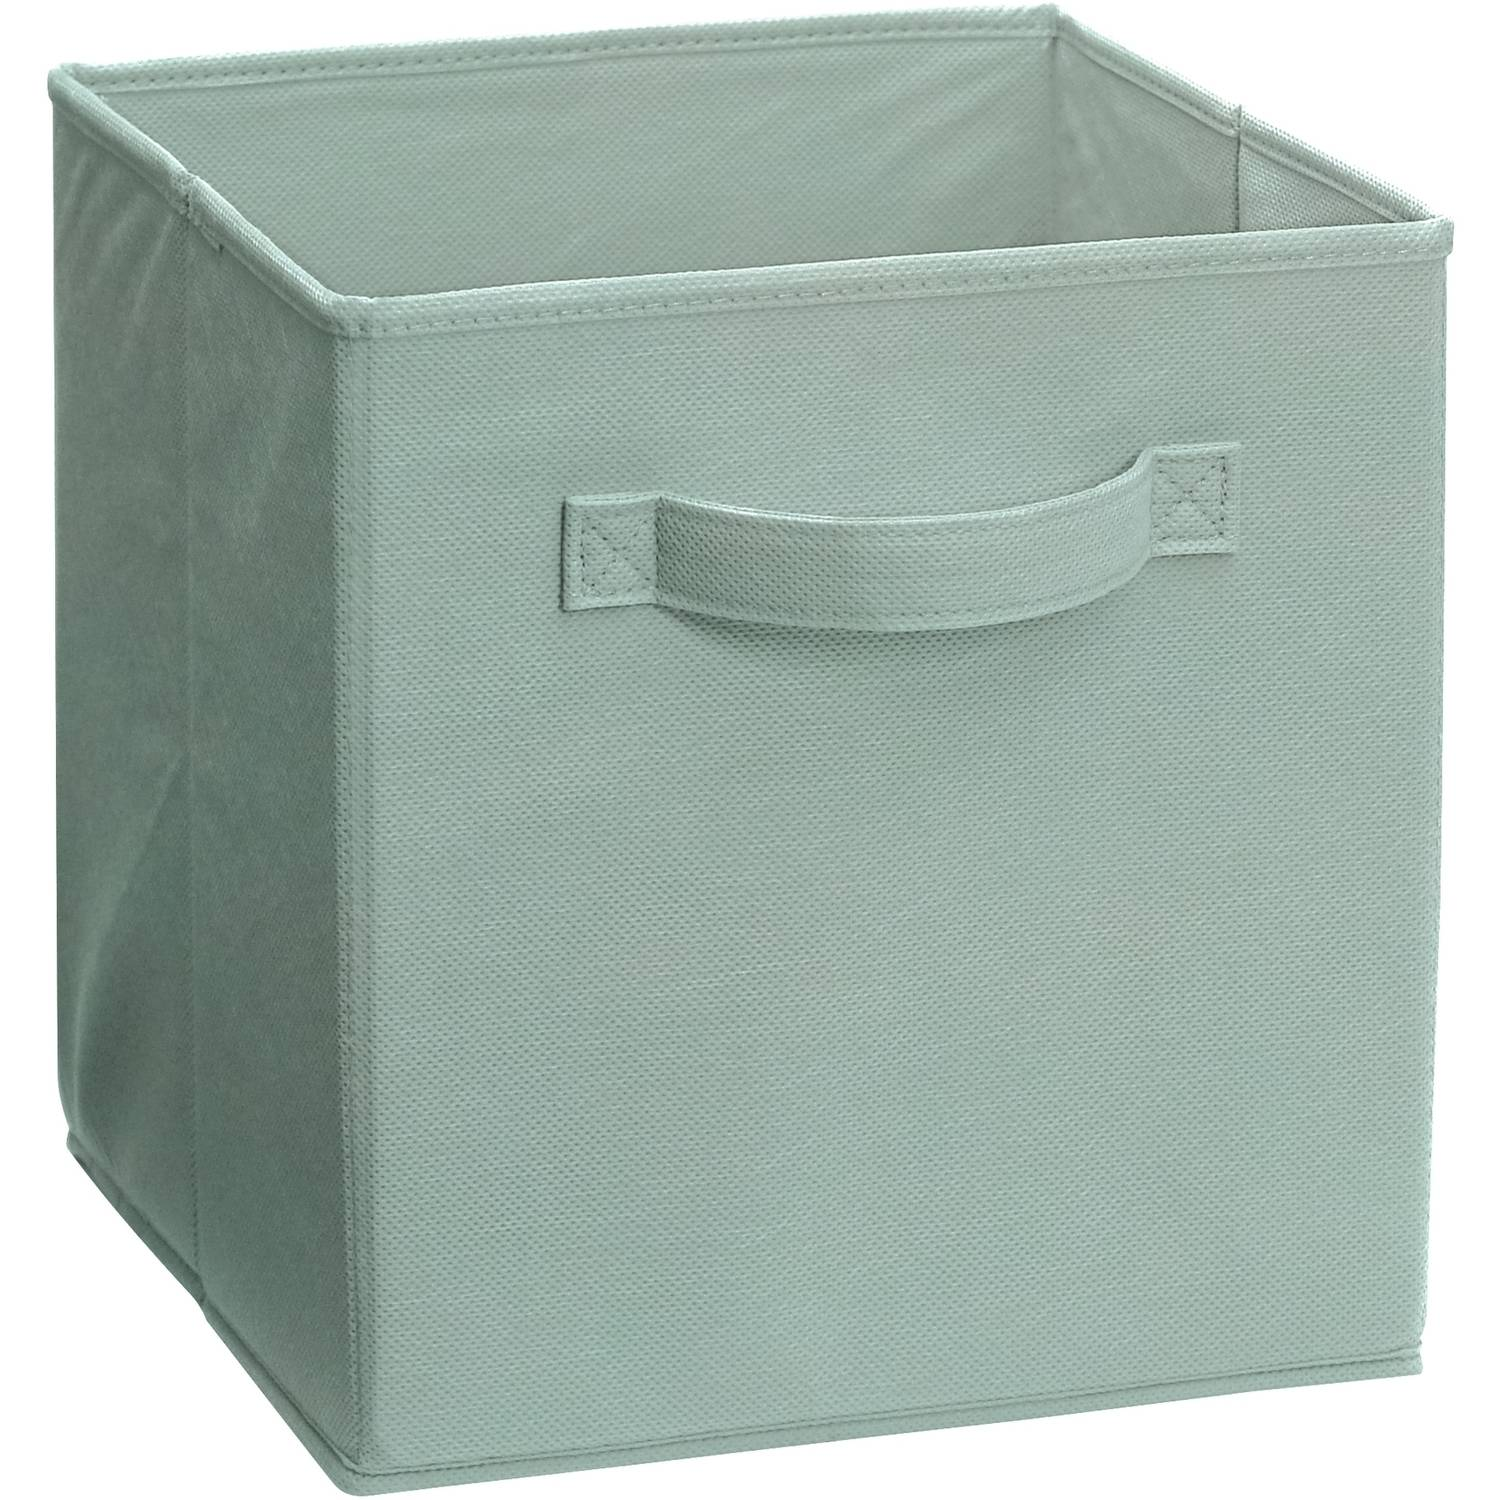 ClosetMaid Fabric Drawer, Seafoam Green